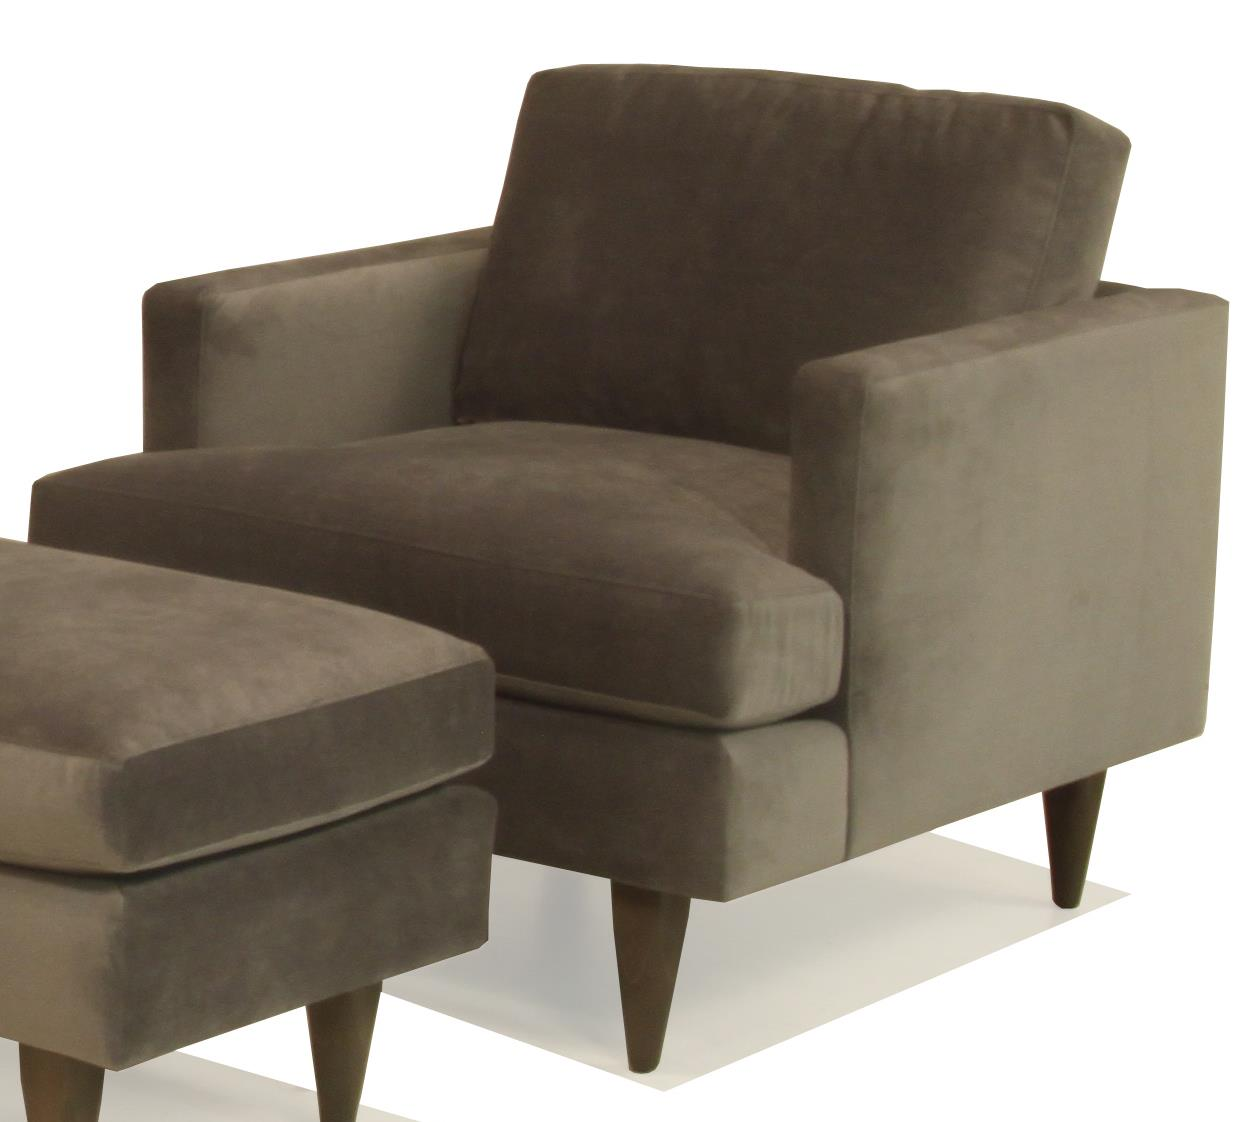 Upholstered Chair with Track Arm